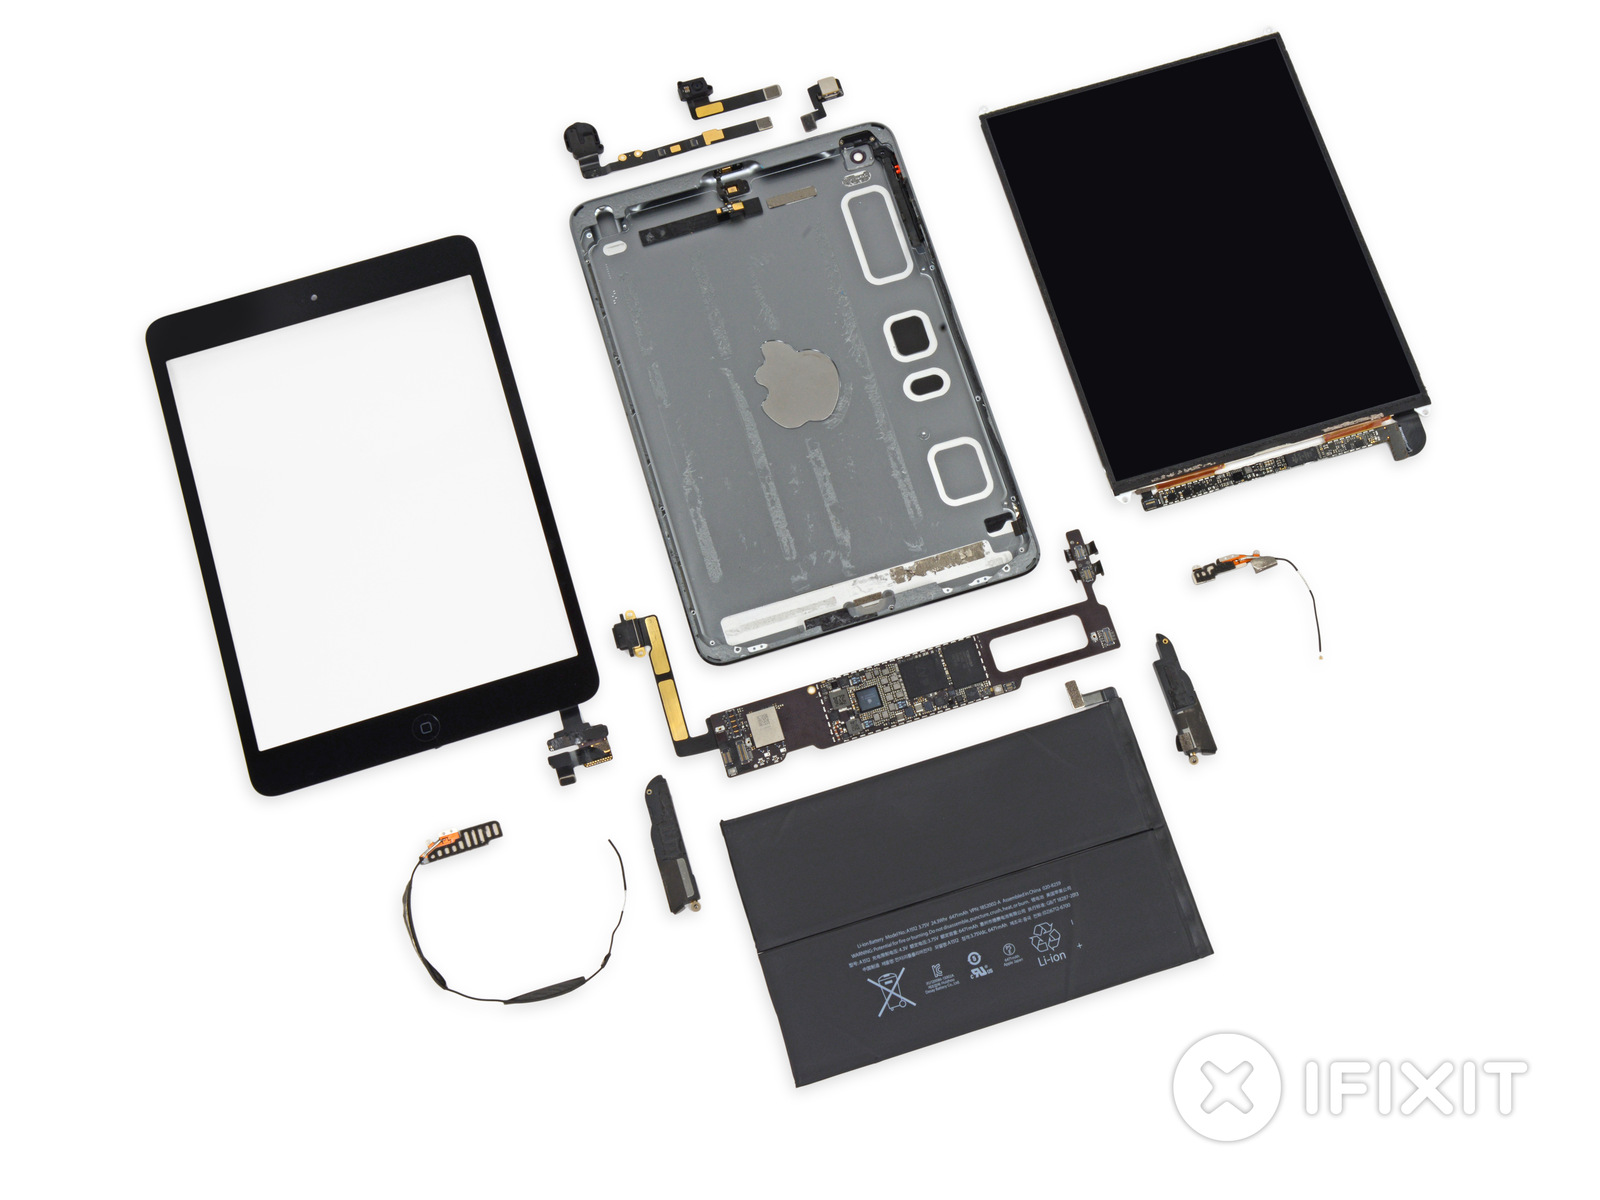 IPad mini 2 (Retina, iFixit teardown 001)